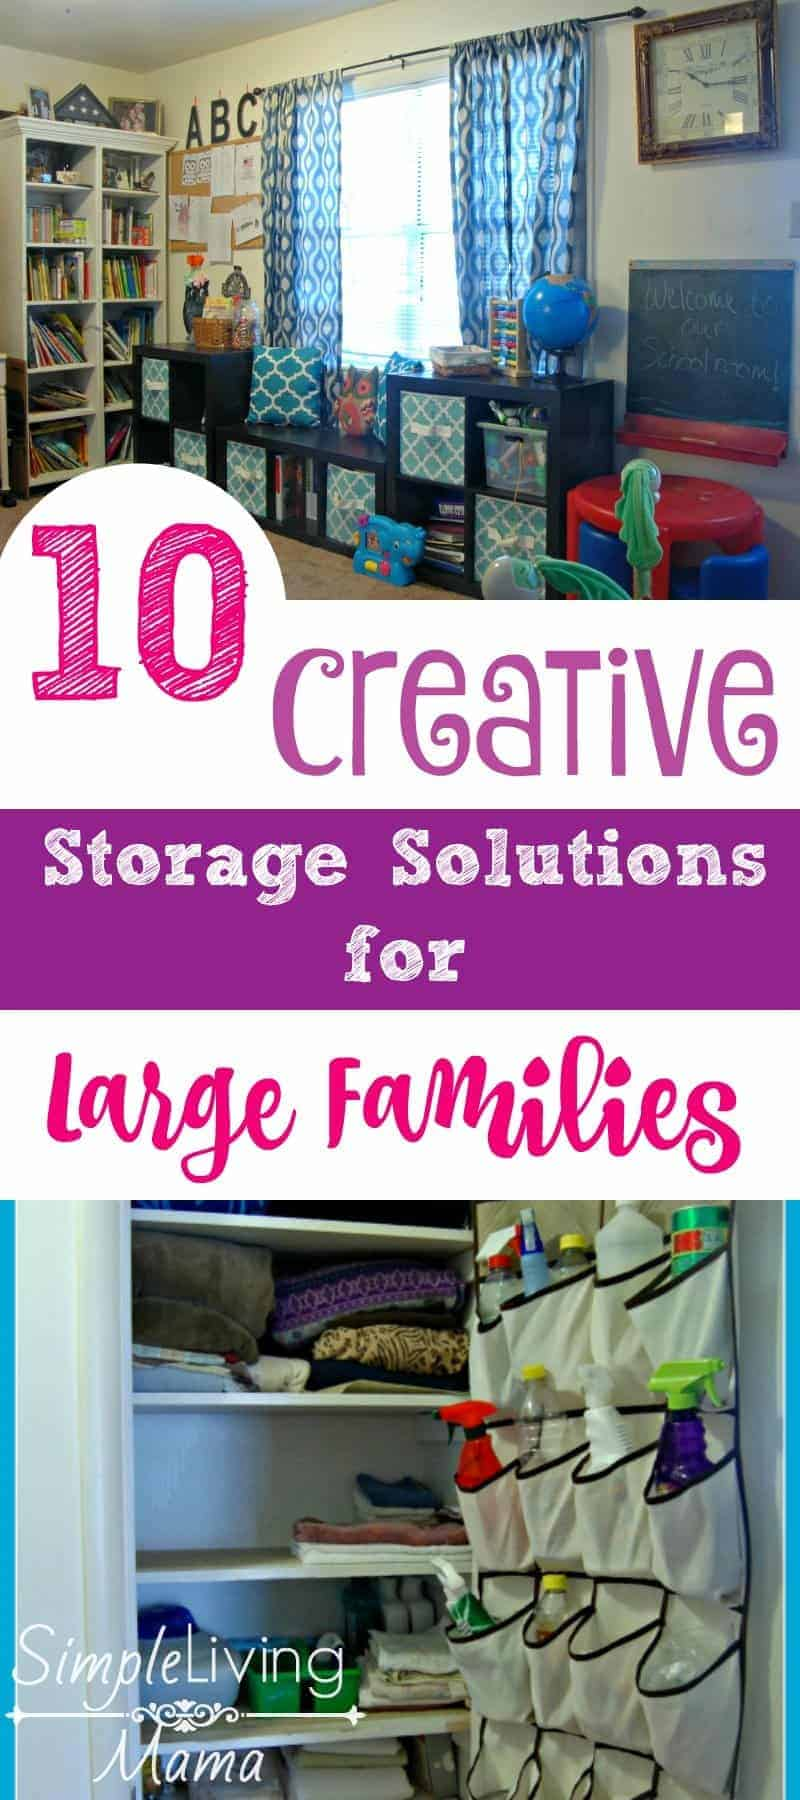 10 creative storage solutions for large families simple living mama